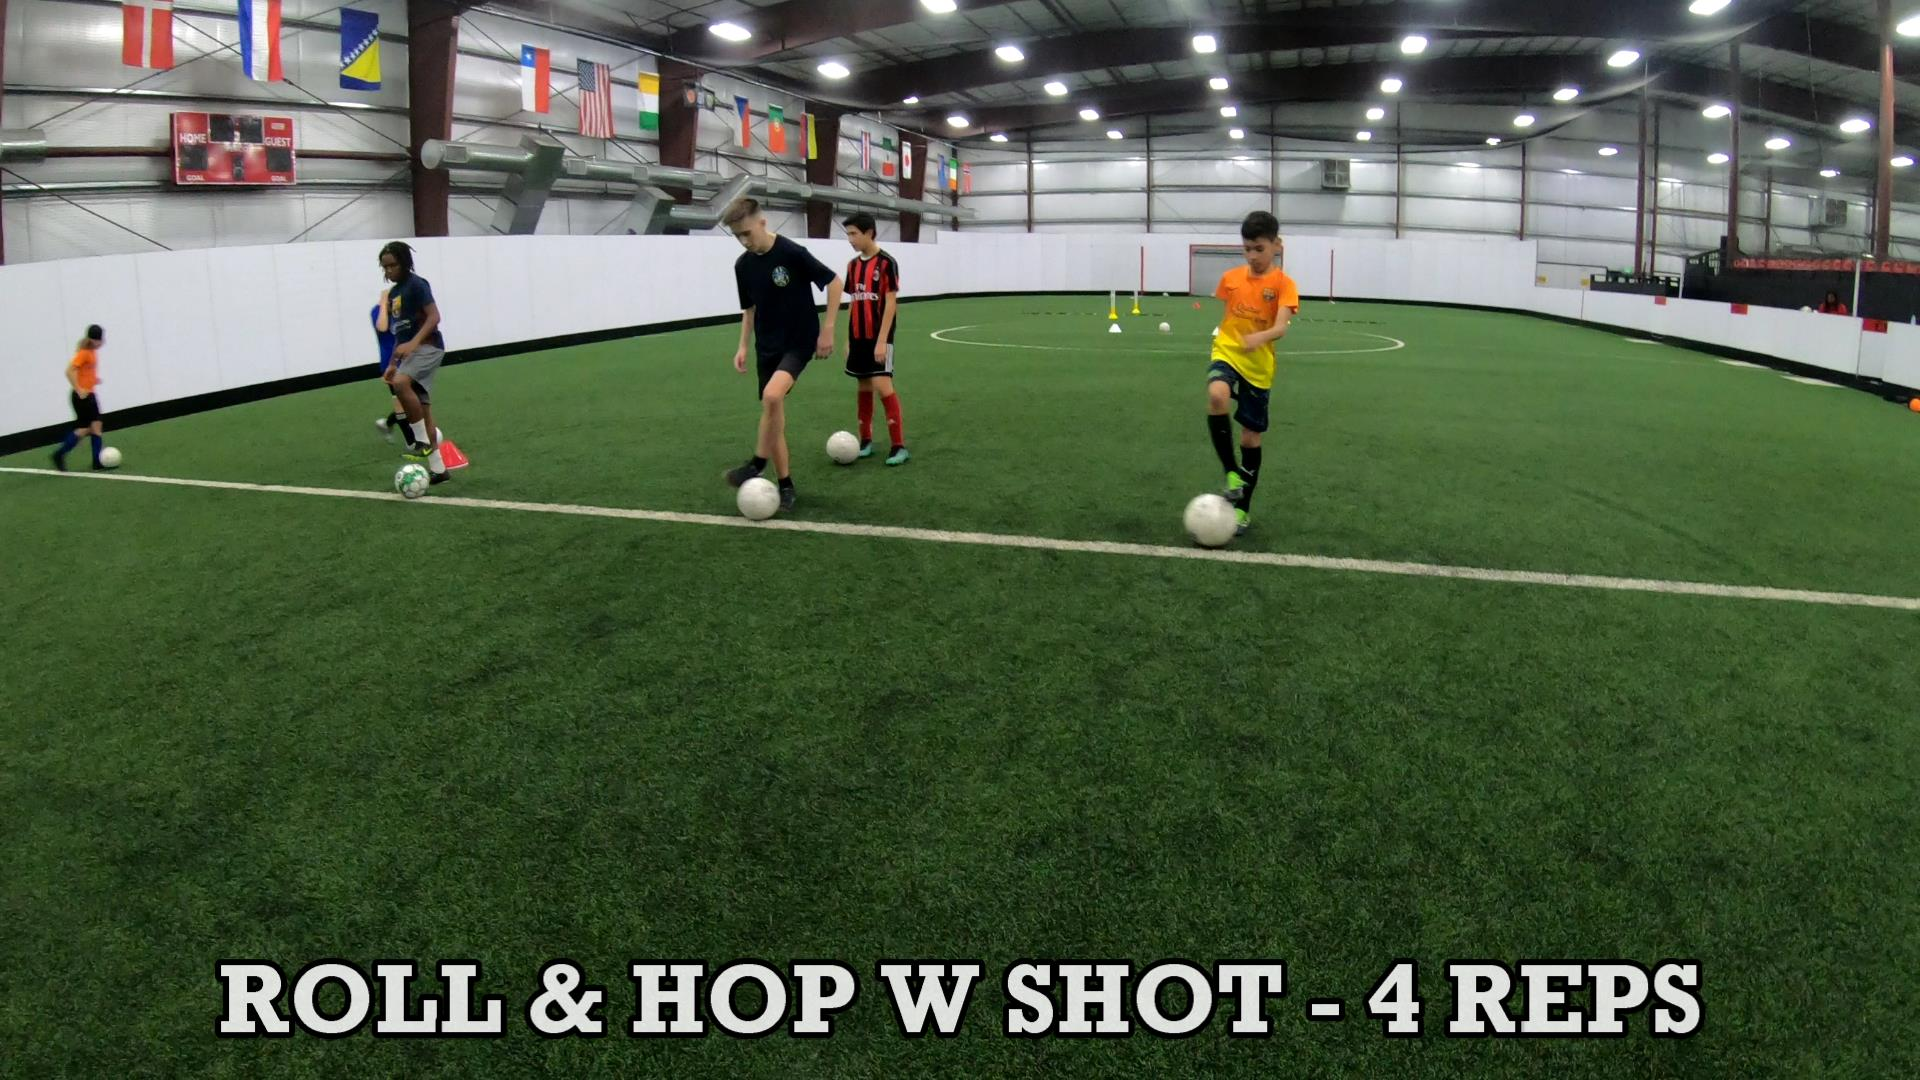 SOCCER COACHING DRILLS FOR KIDS 3